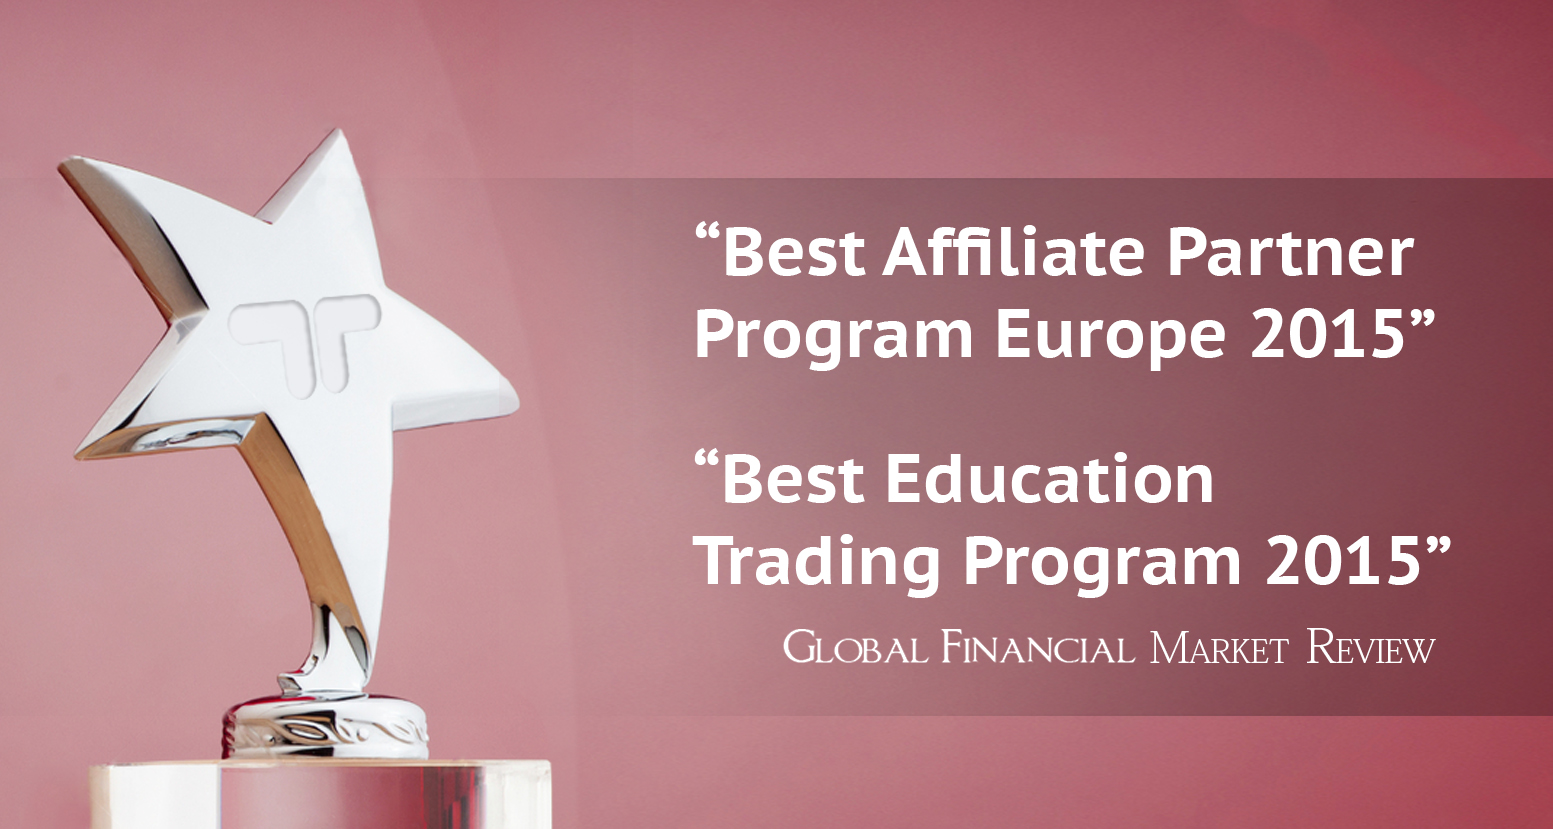 TeleTrade received the awards 'Best Affiliate Partner Program Europe 2015' and 'Best Education Trading Program Europe 2015' - TeleTrade